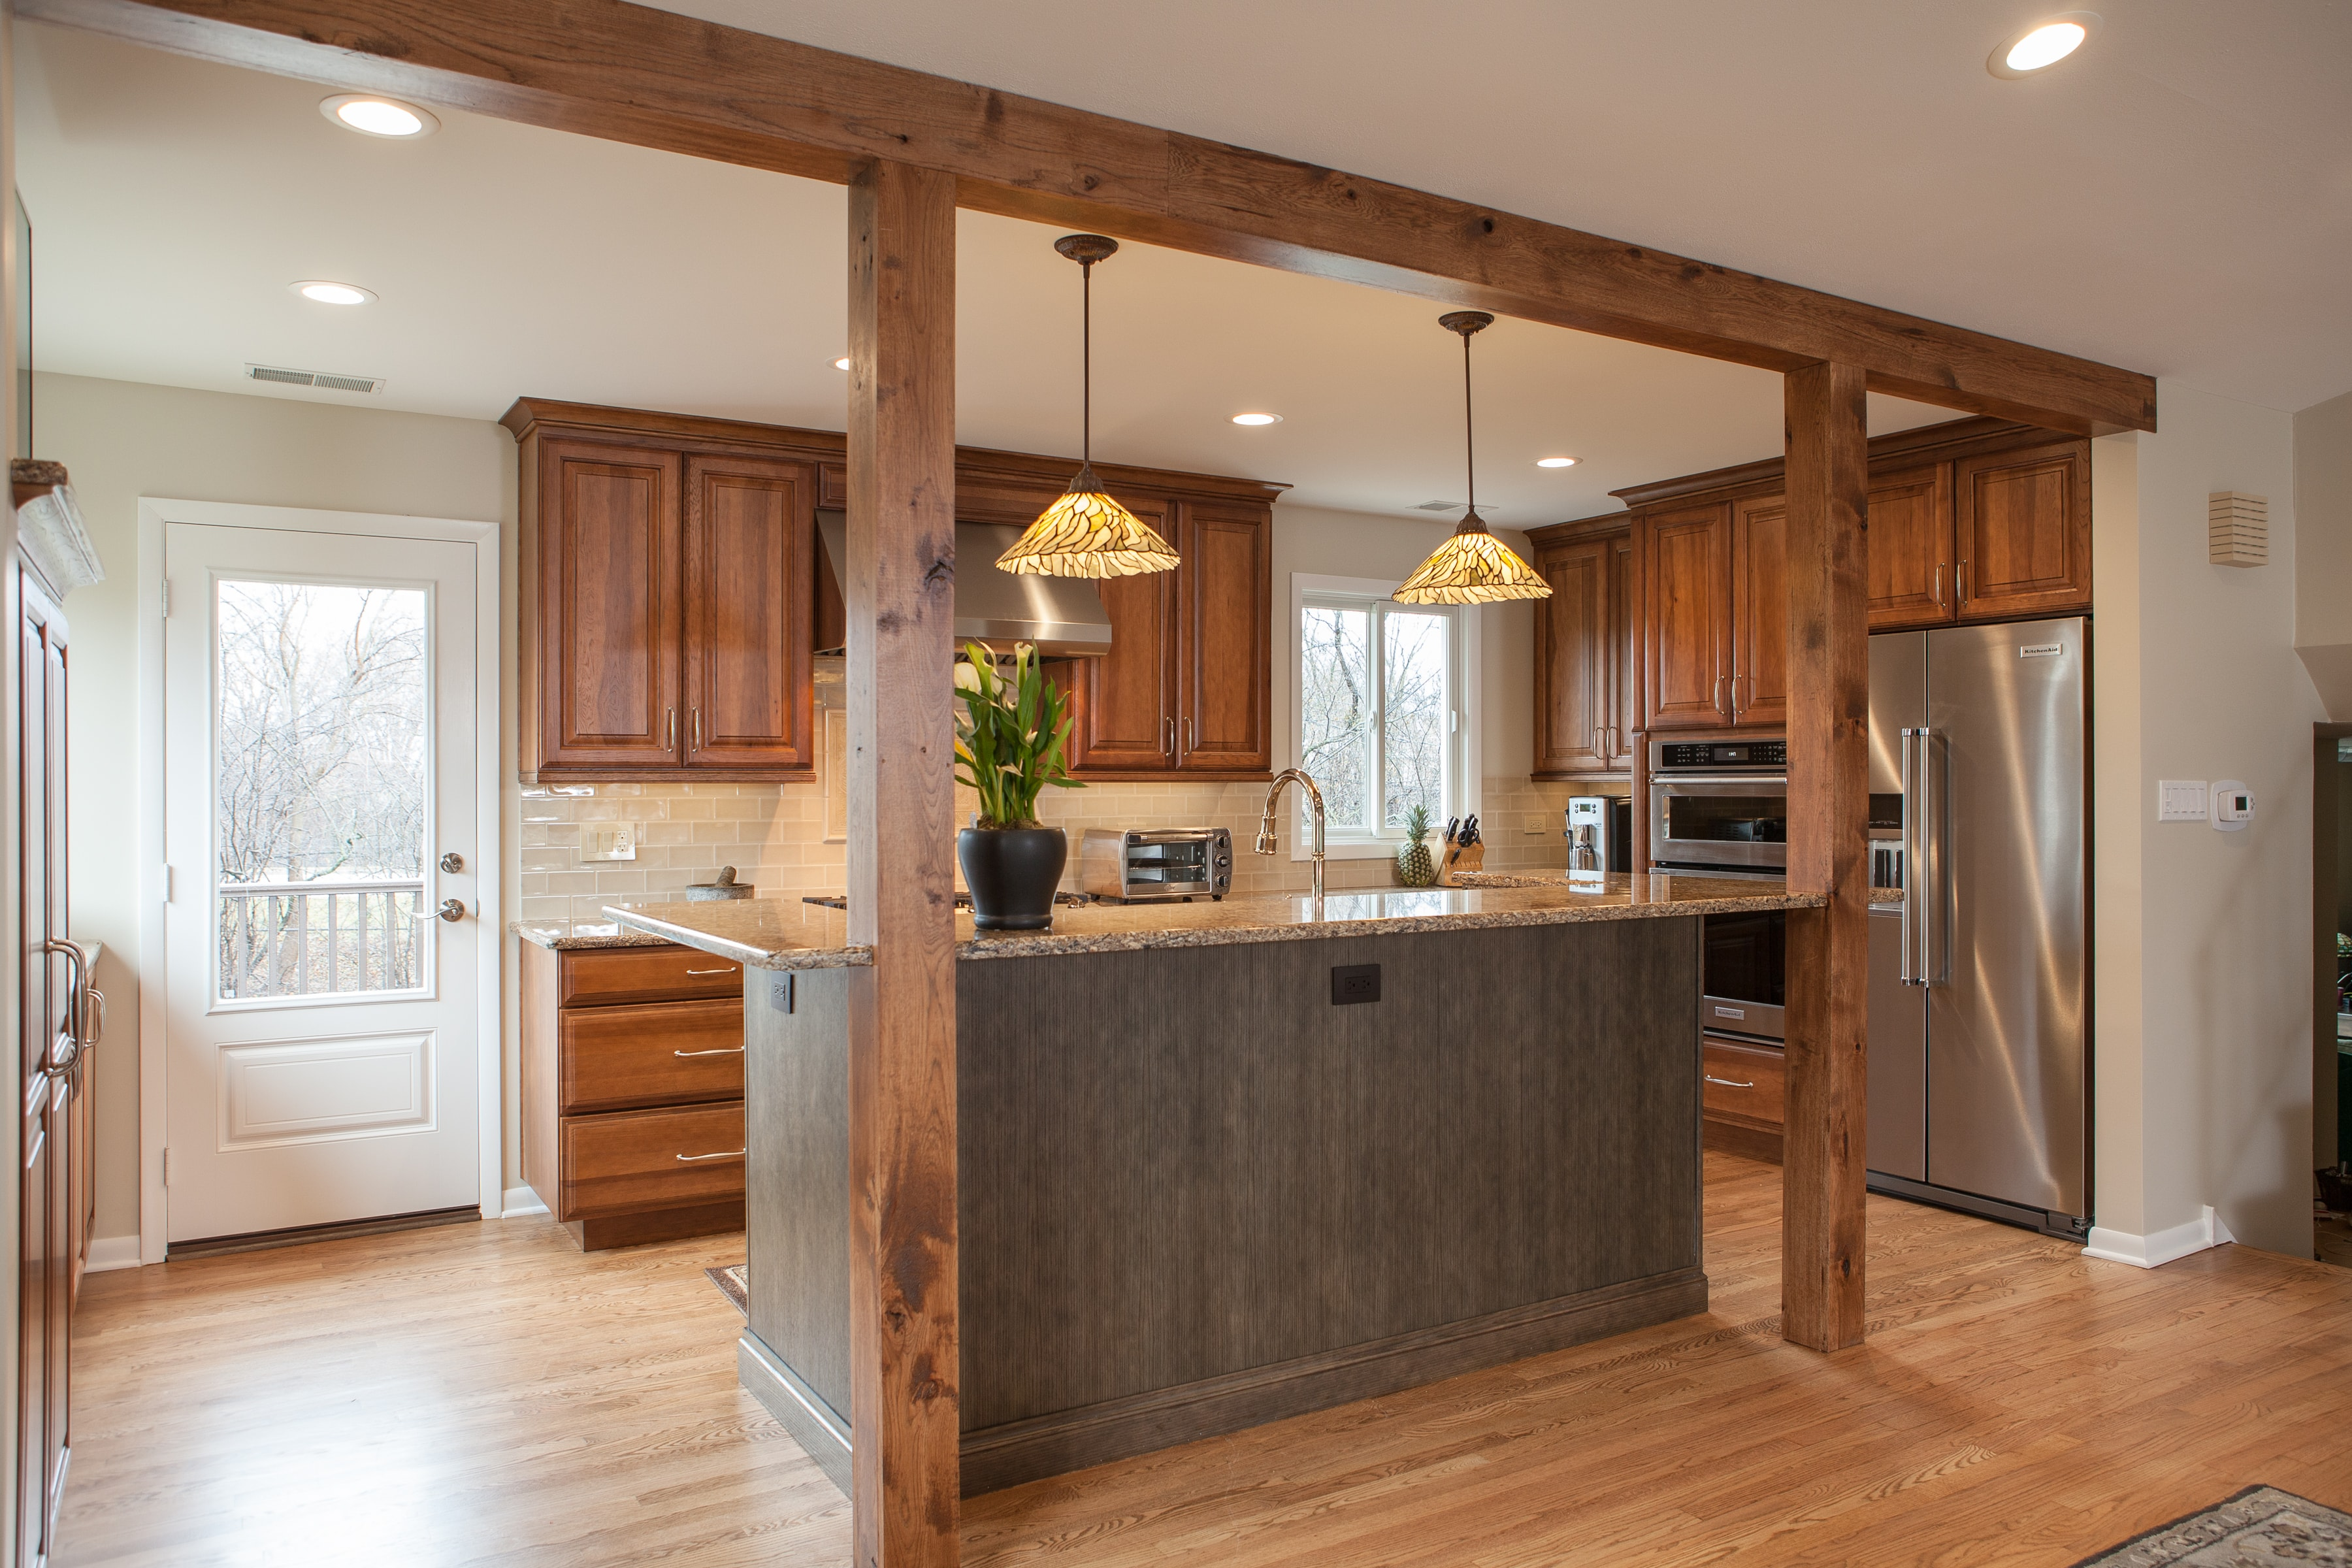 Kitchen Design Companies Chicago Home Remodeling Company Chicago North Shore Bds Design